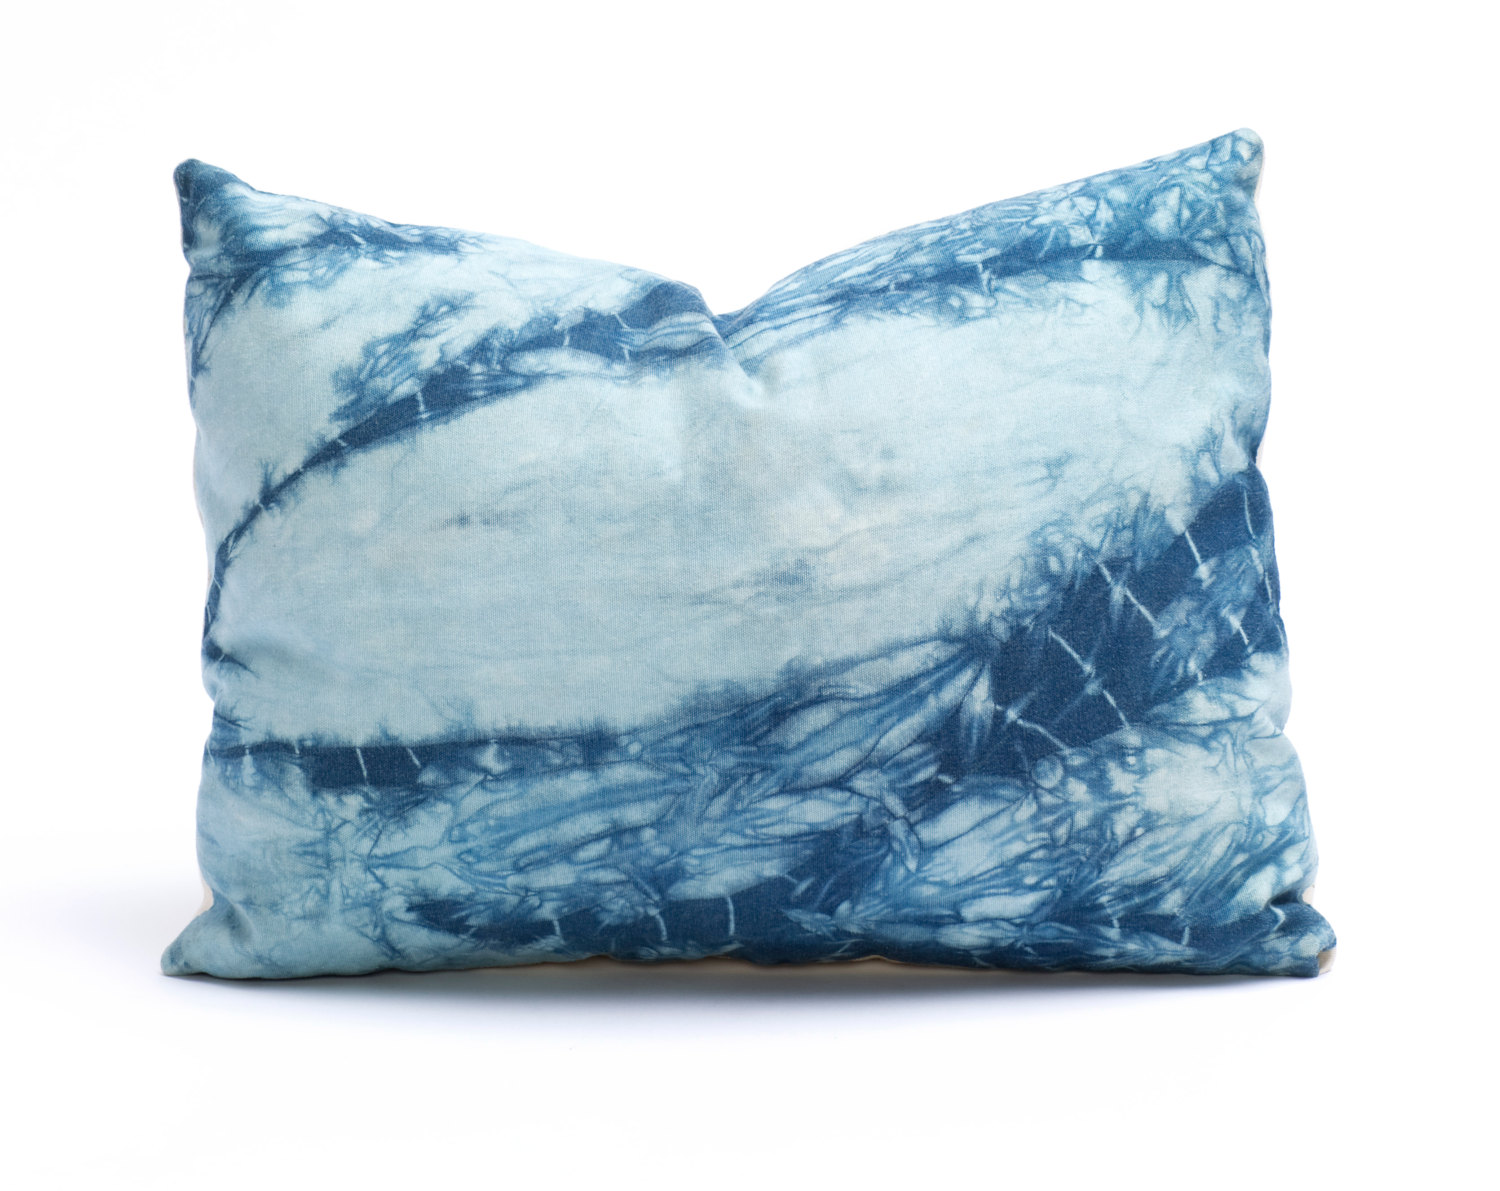 A good pillow can be hard to find on Etsy, which is why this hand-dipped pillow ($59) quickly became a favorite. The indigo color is a nice contrast against neutrals, especially in the Summer.